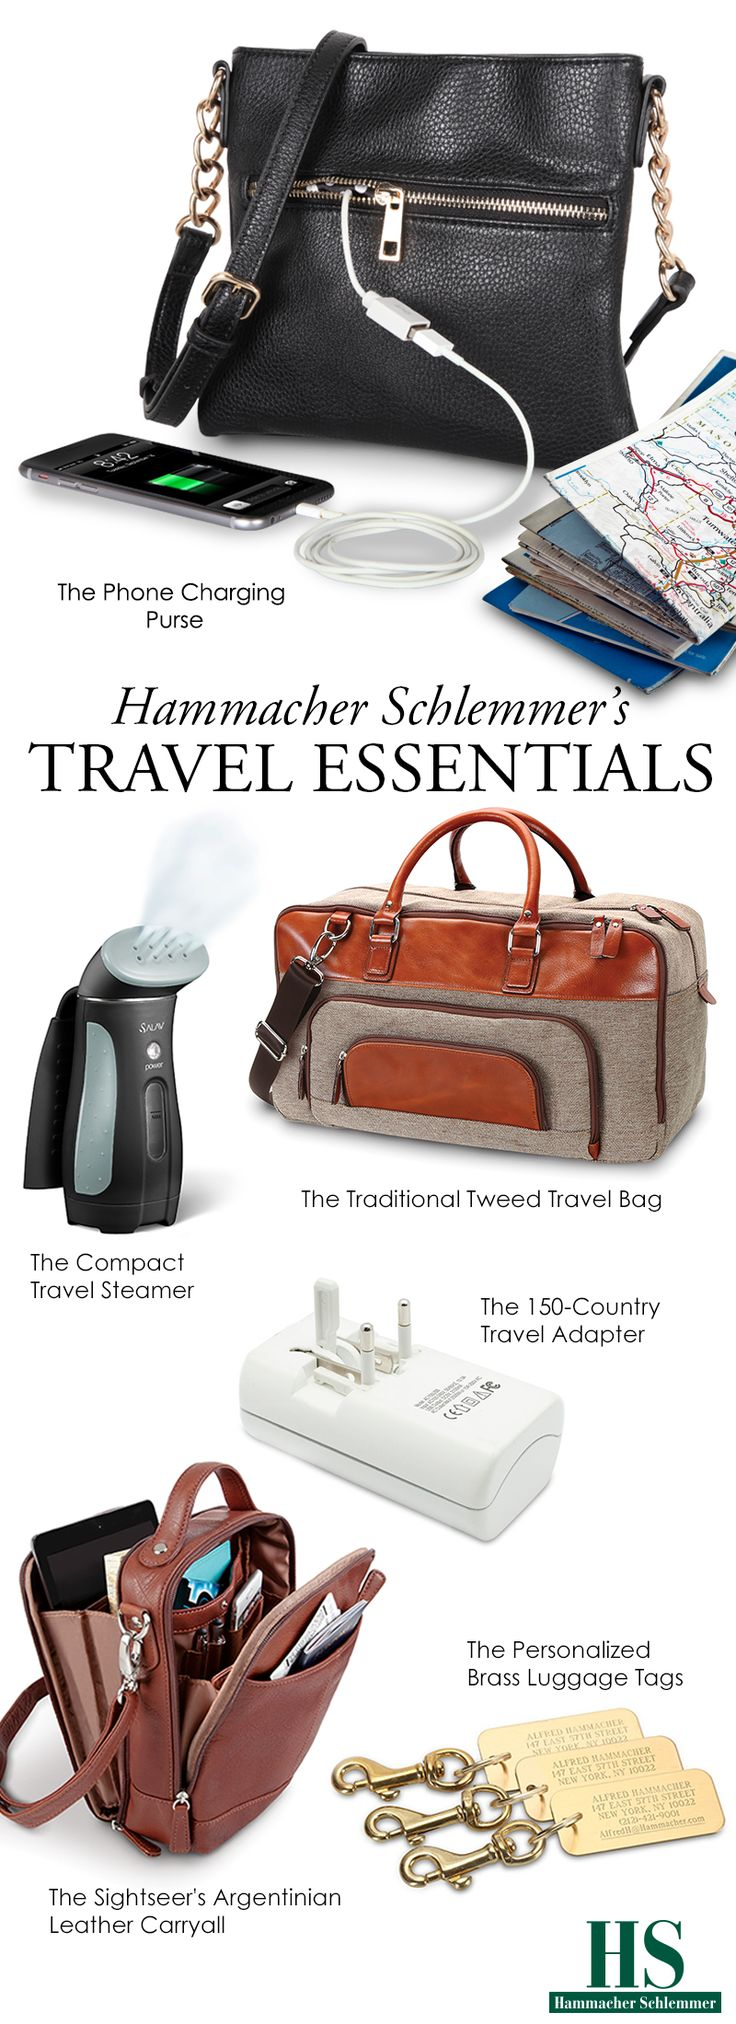 Hammacher Schlemmer Offers the Best, the Only, and the Unexpected Travel Essentials.